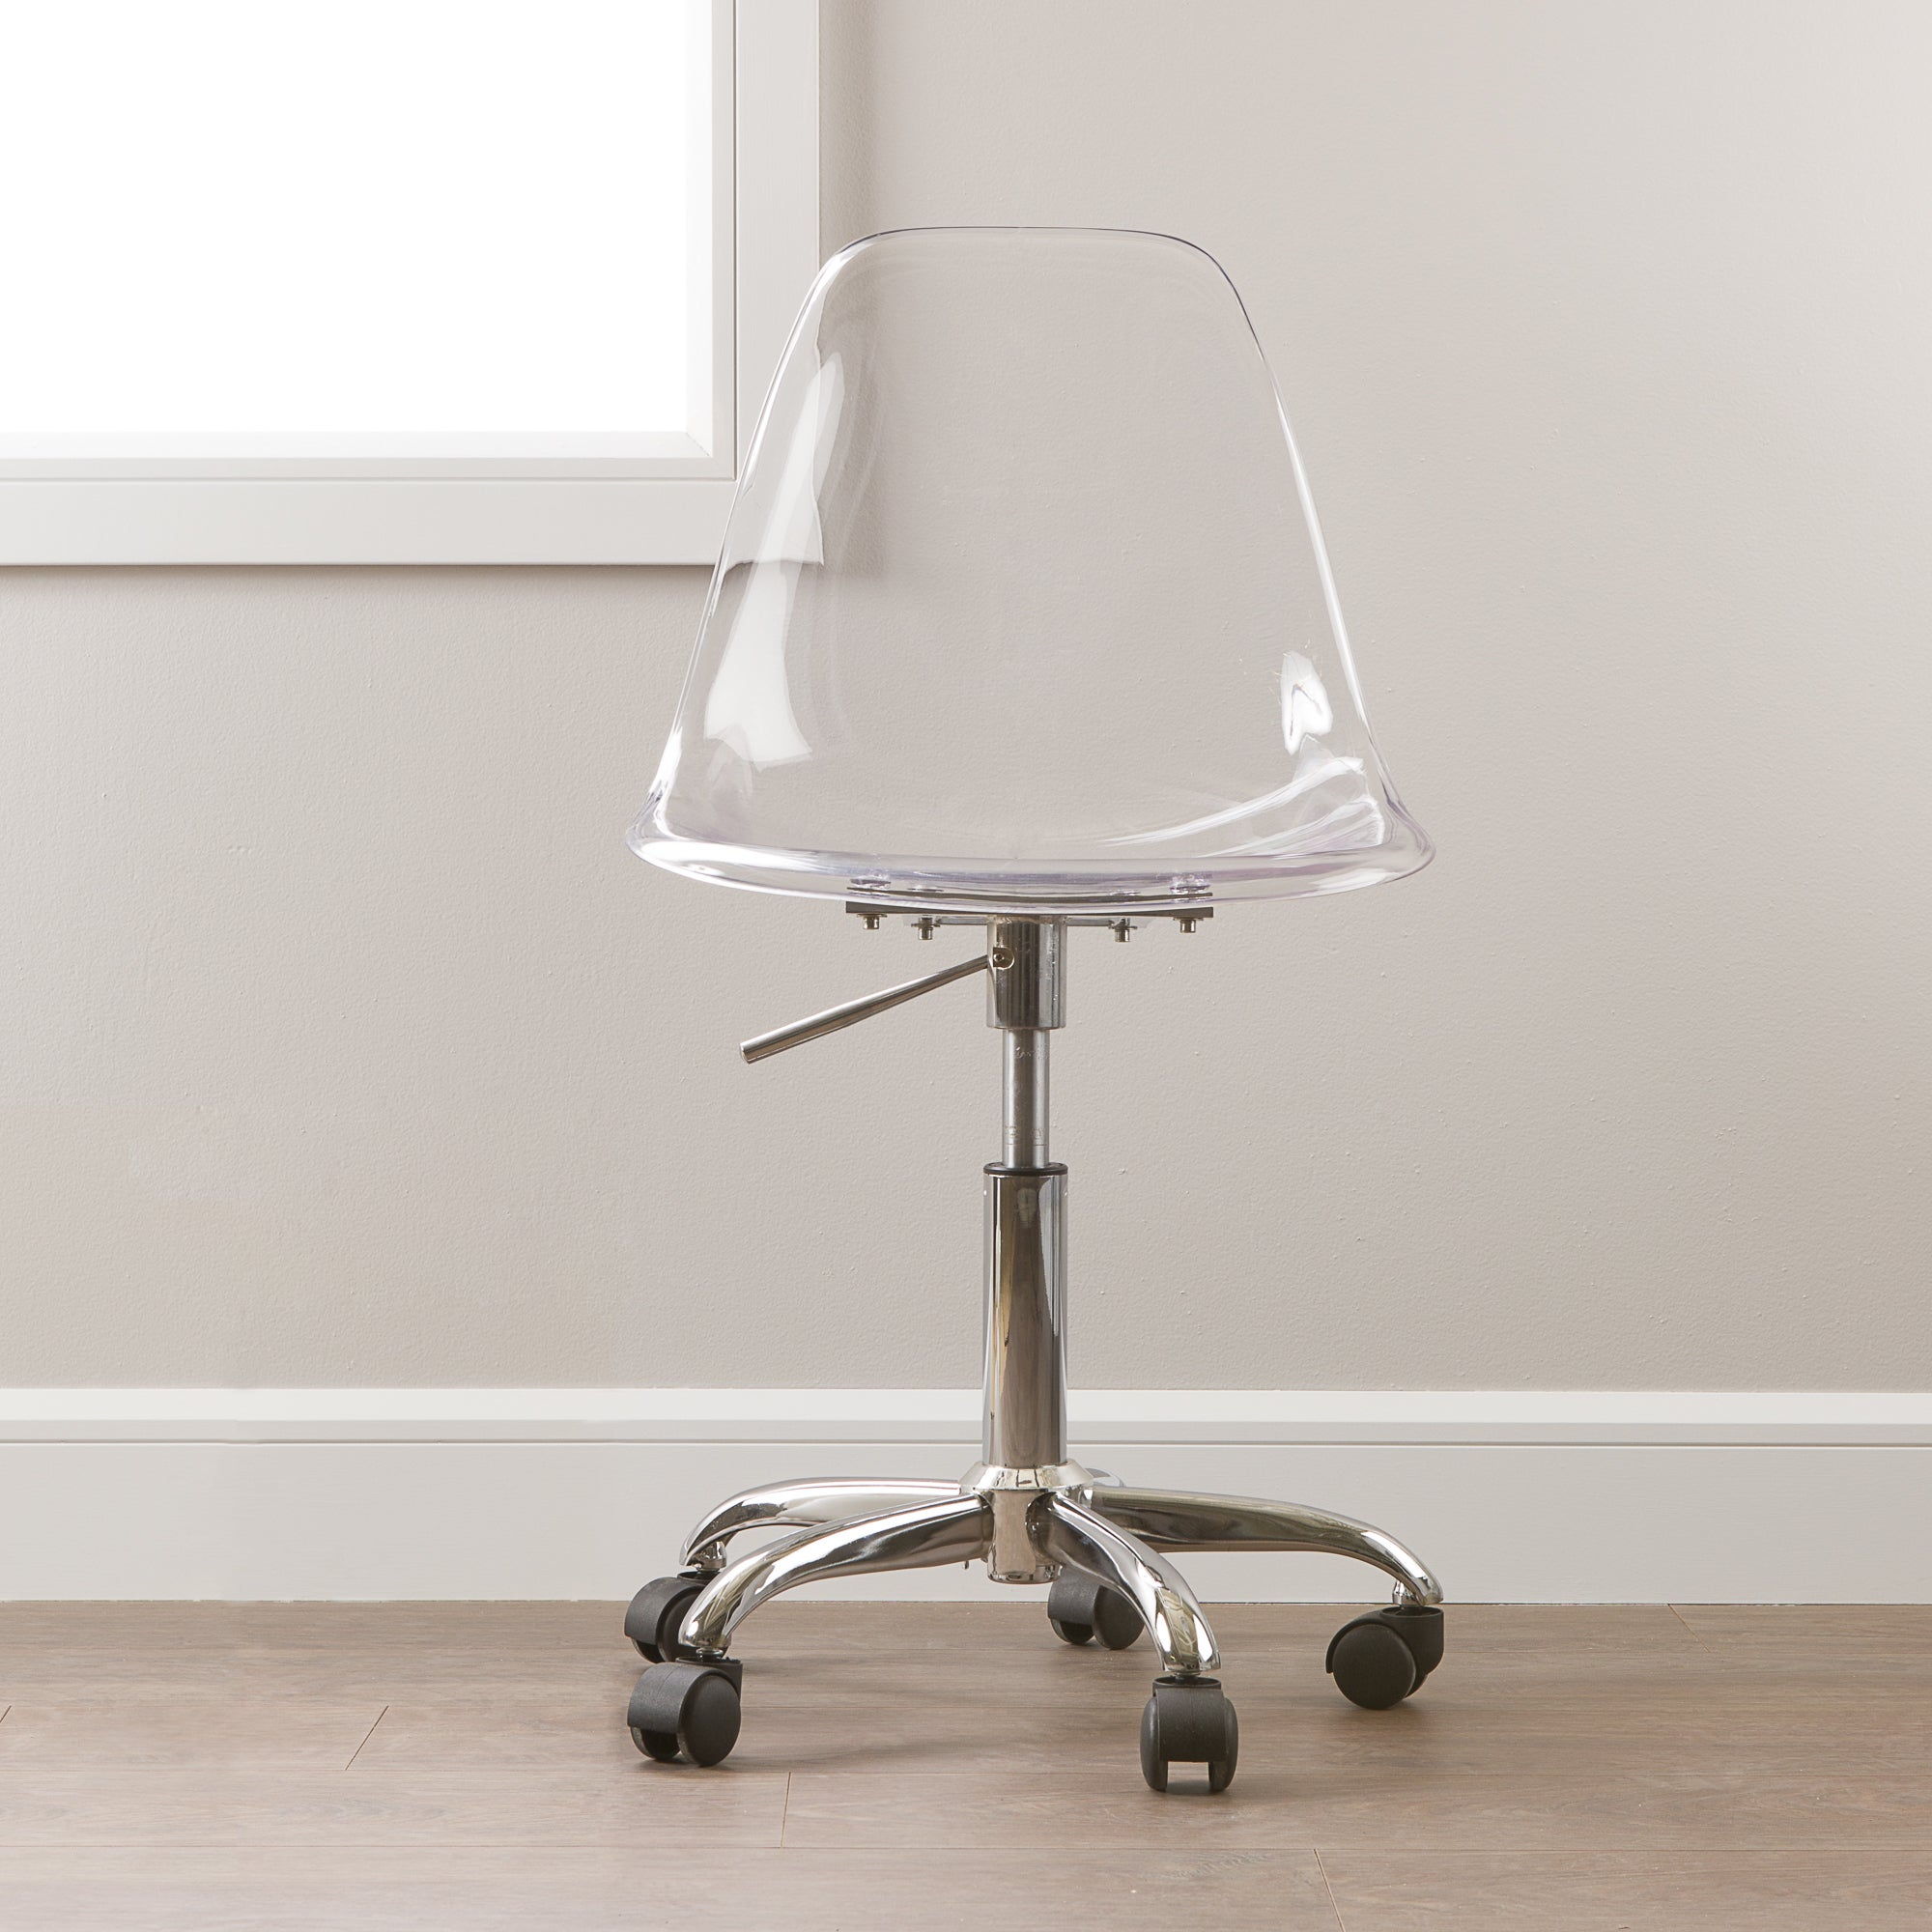 Delicieux Shop South Shore Furniture Clear Acrylic Wheeled Office Chair   Free  Shipping Today   Overstock.com   11468395